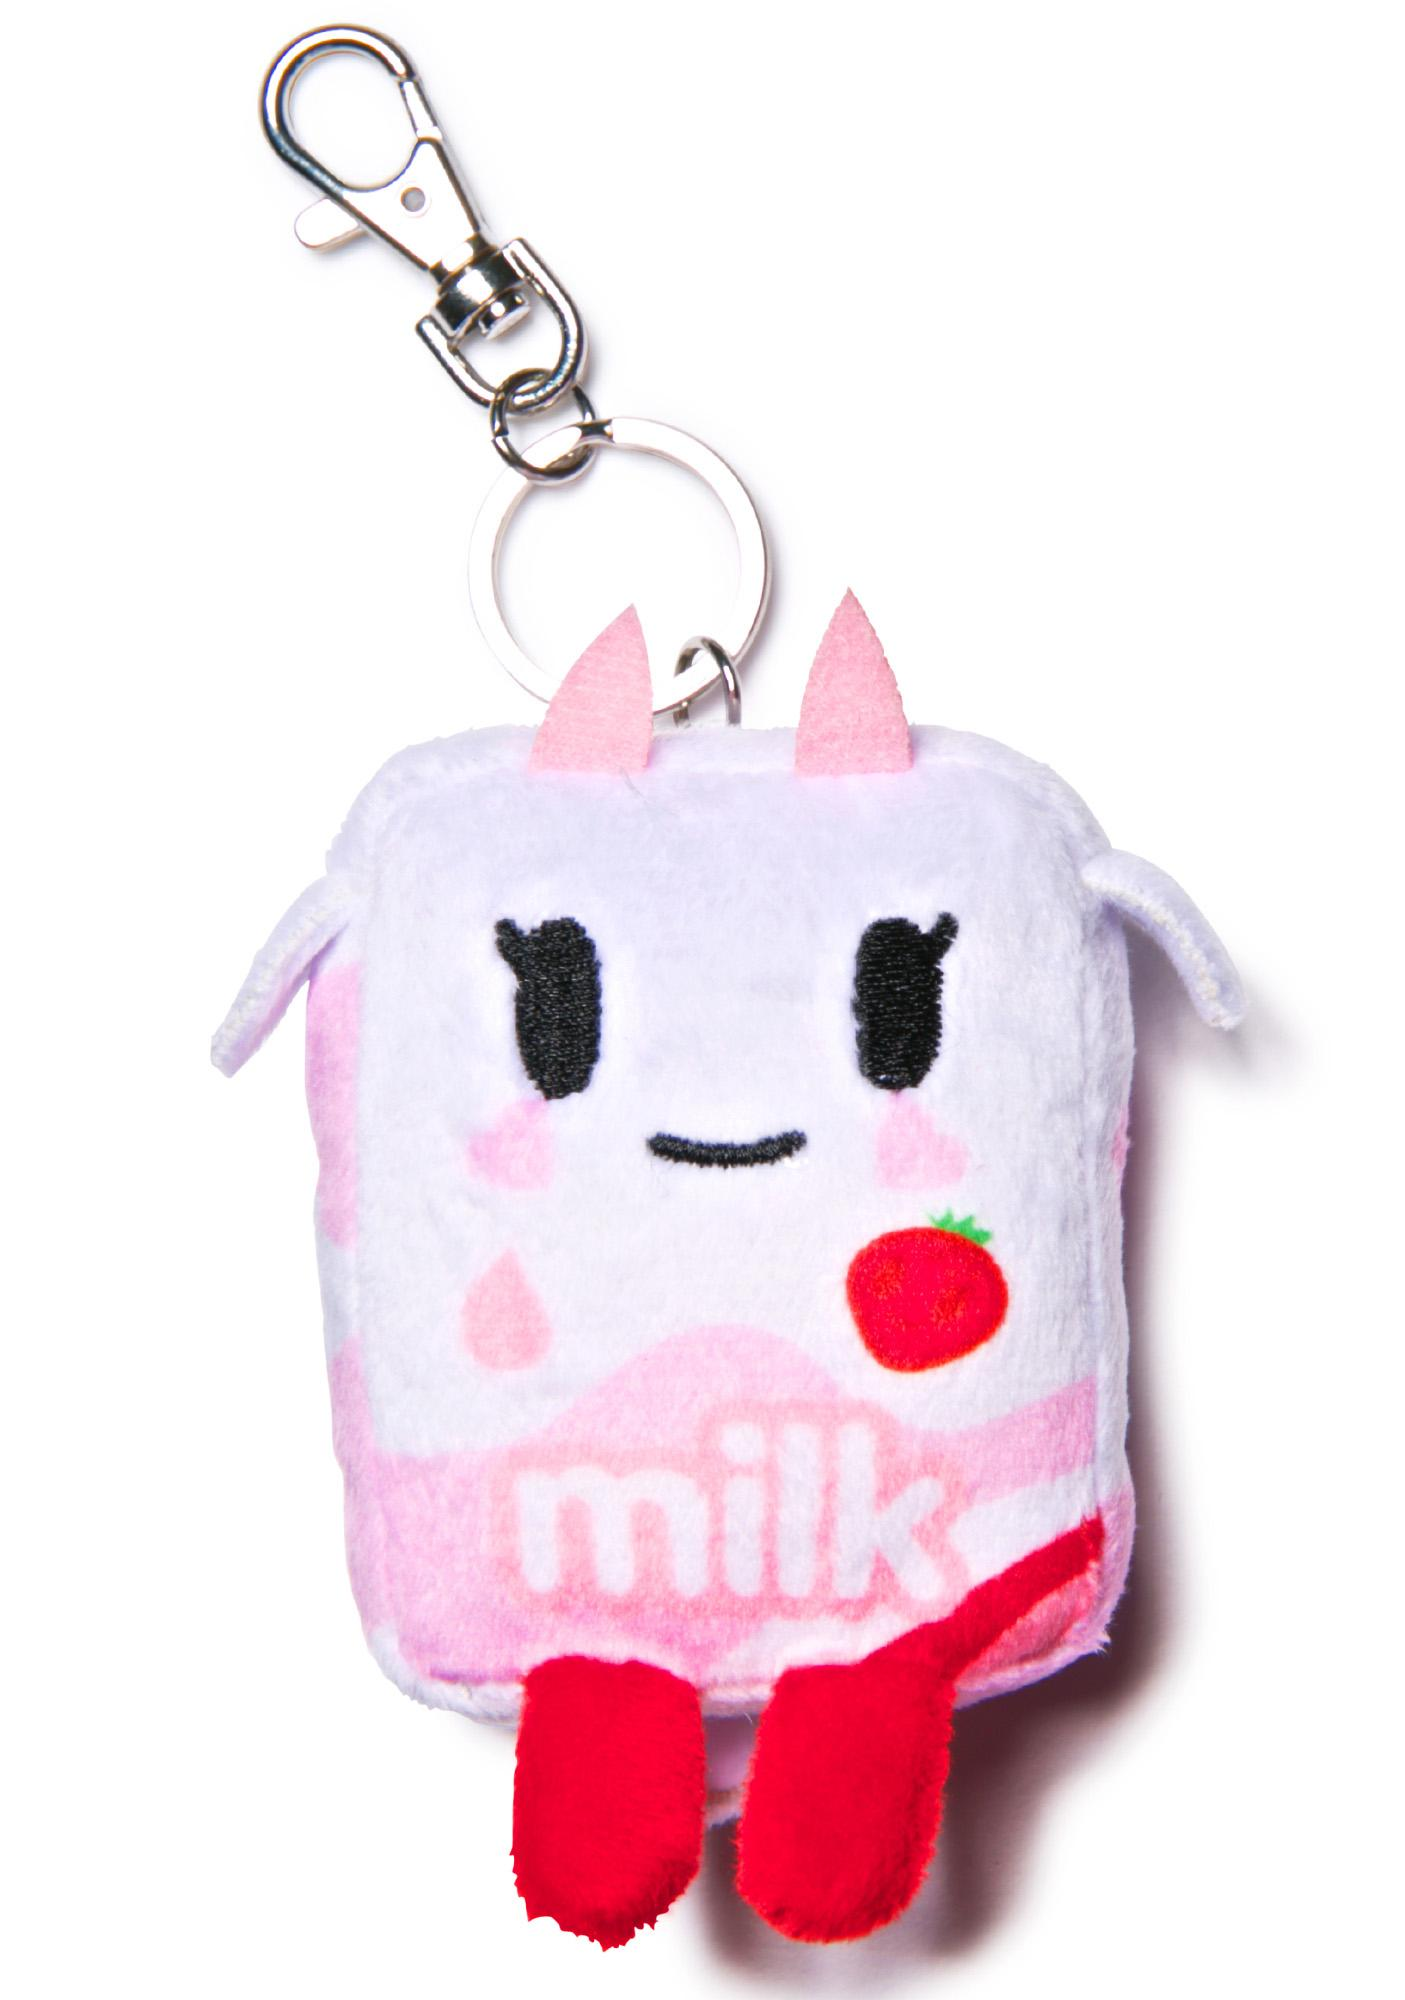 Tokidoki Strawberry Milk Moofia Plush Keychain